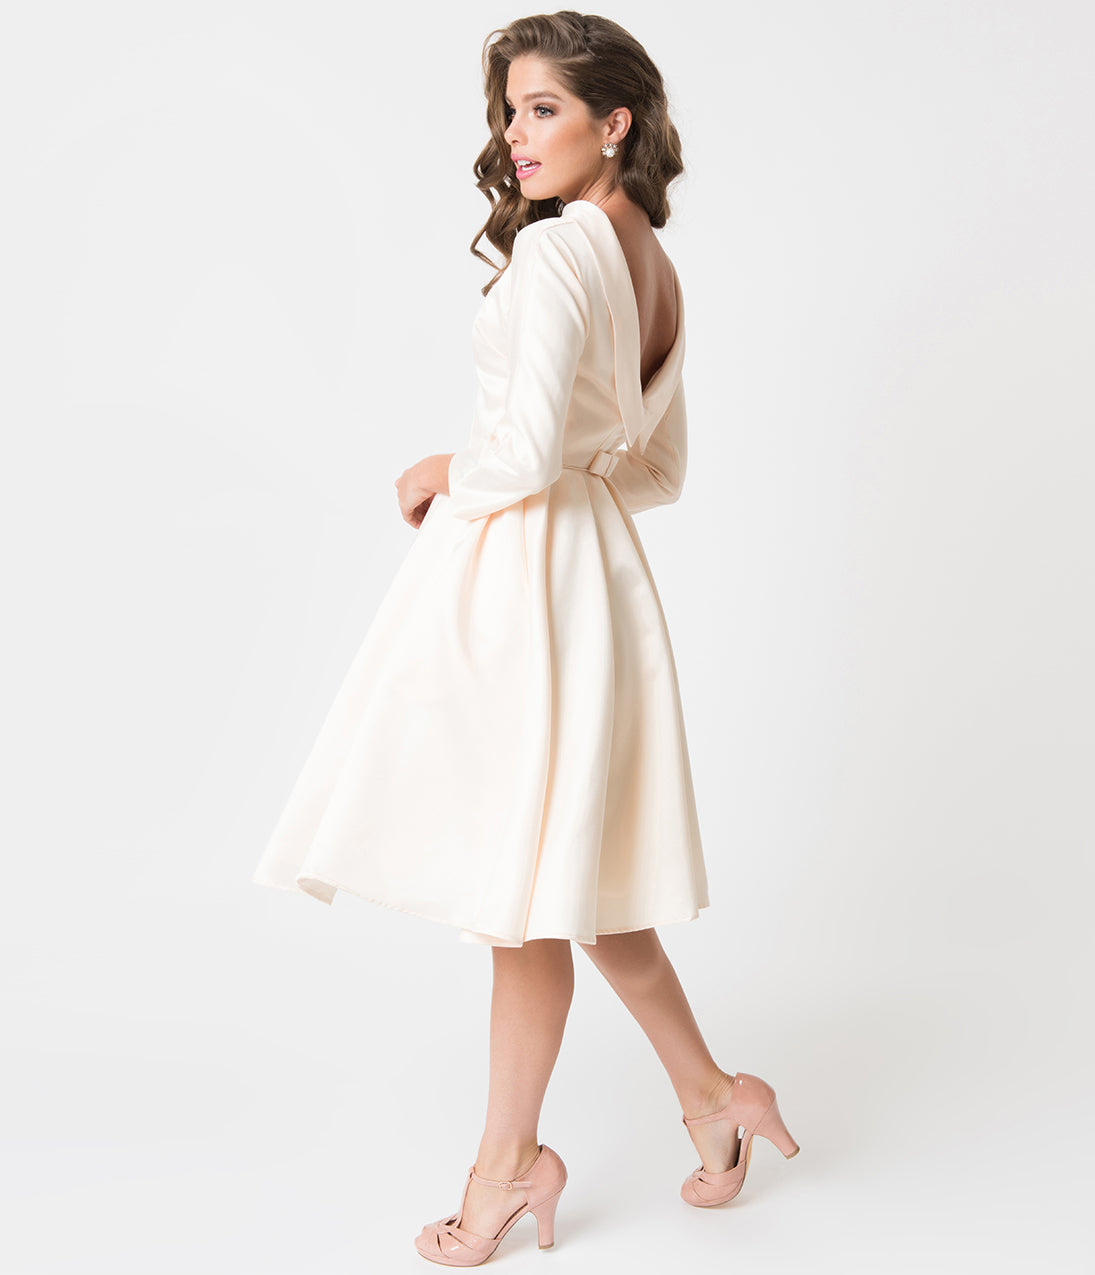 Petite Dresses for Outdoor Country Weddings